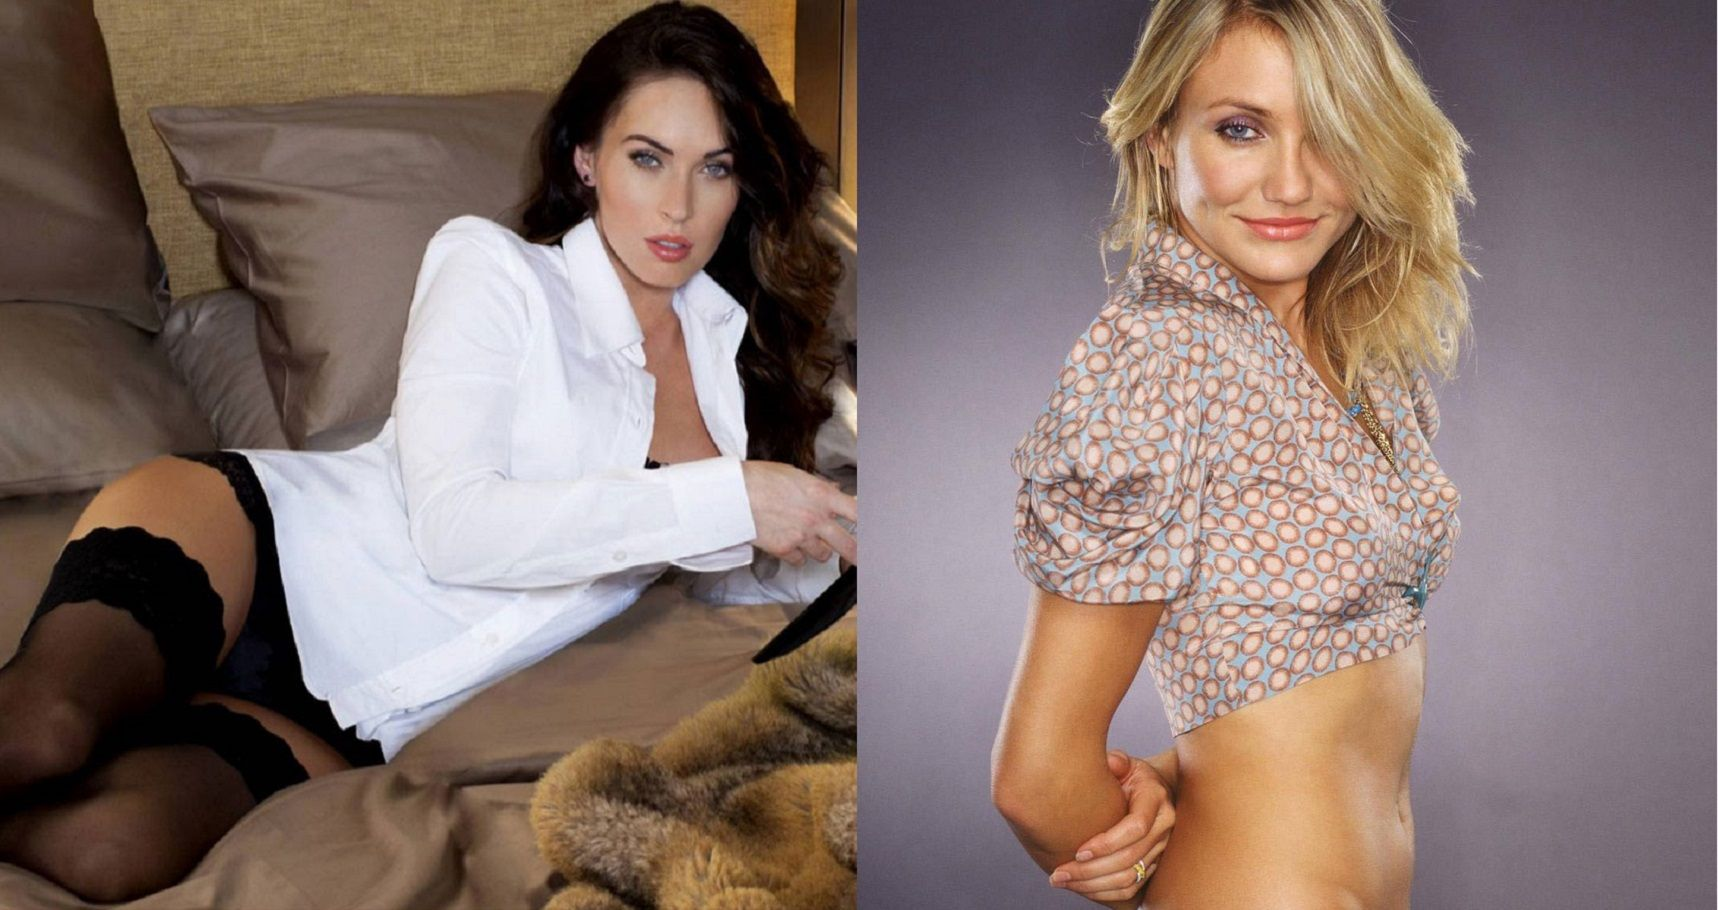 10 Sexy Celebs Who Dated Women But Got Married To Men